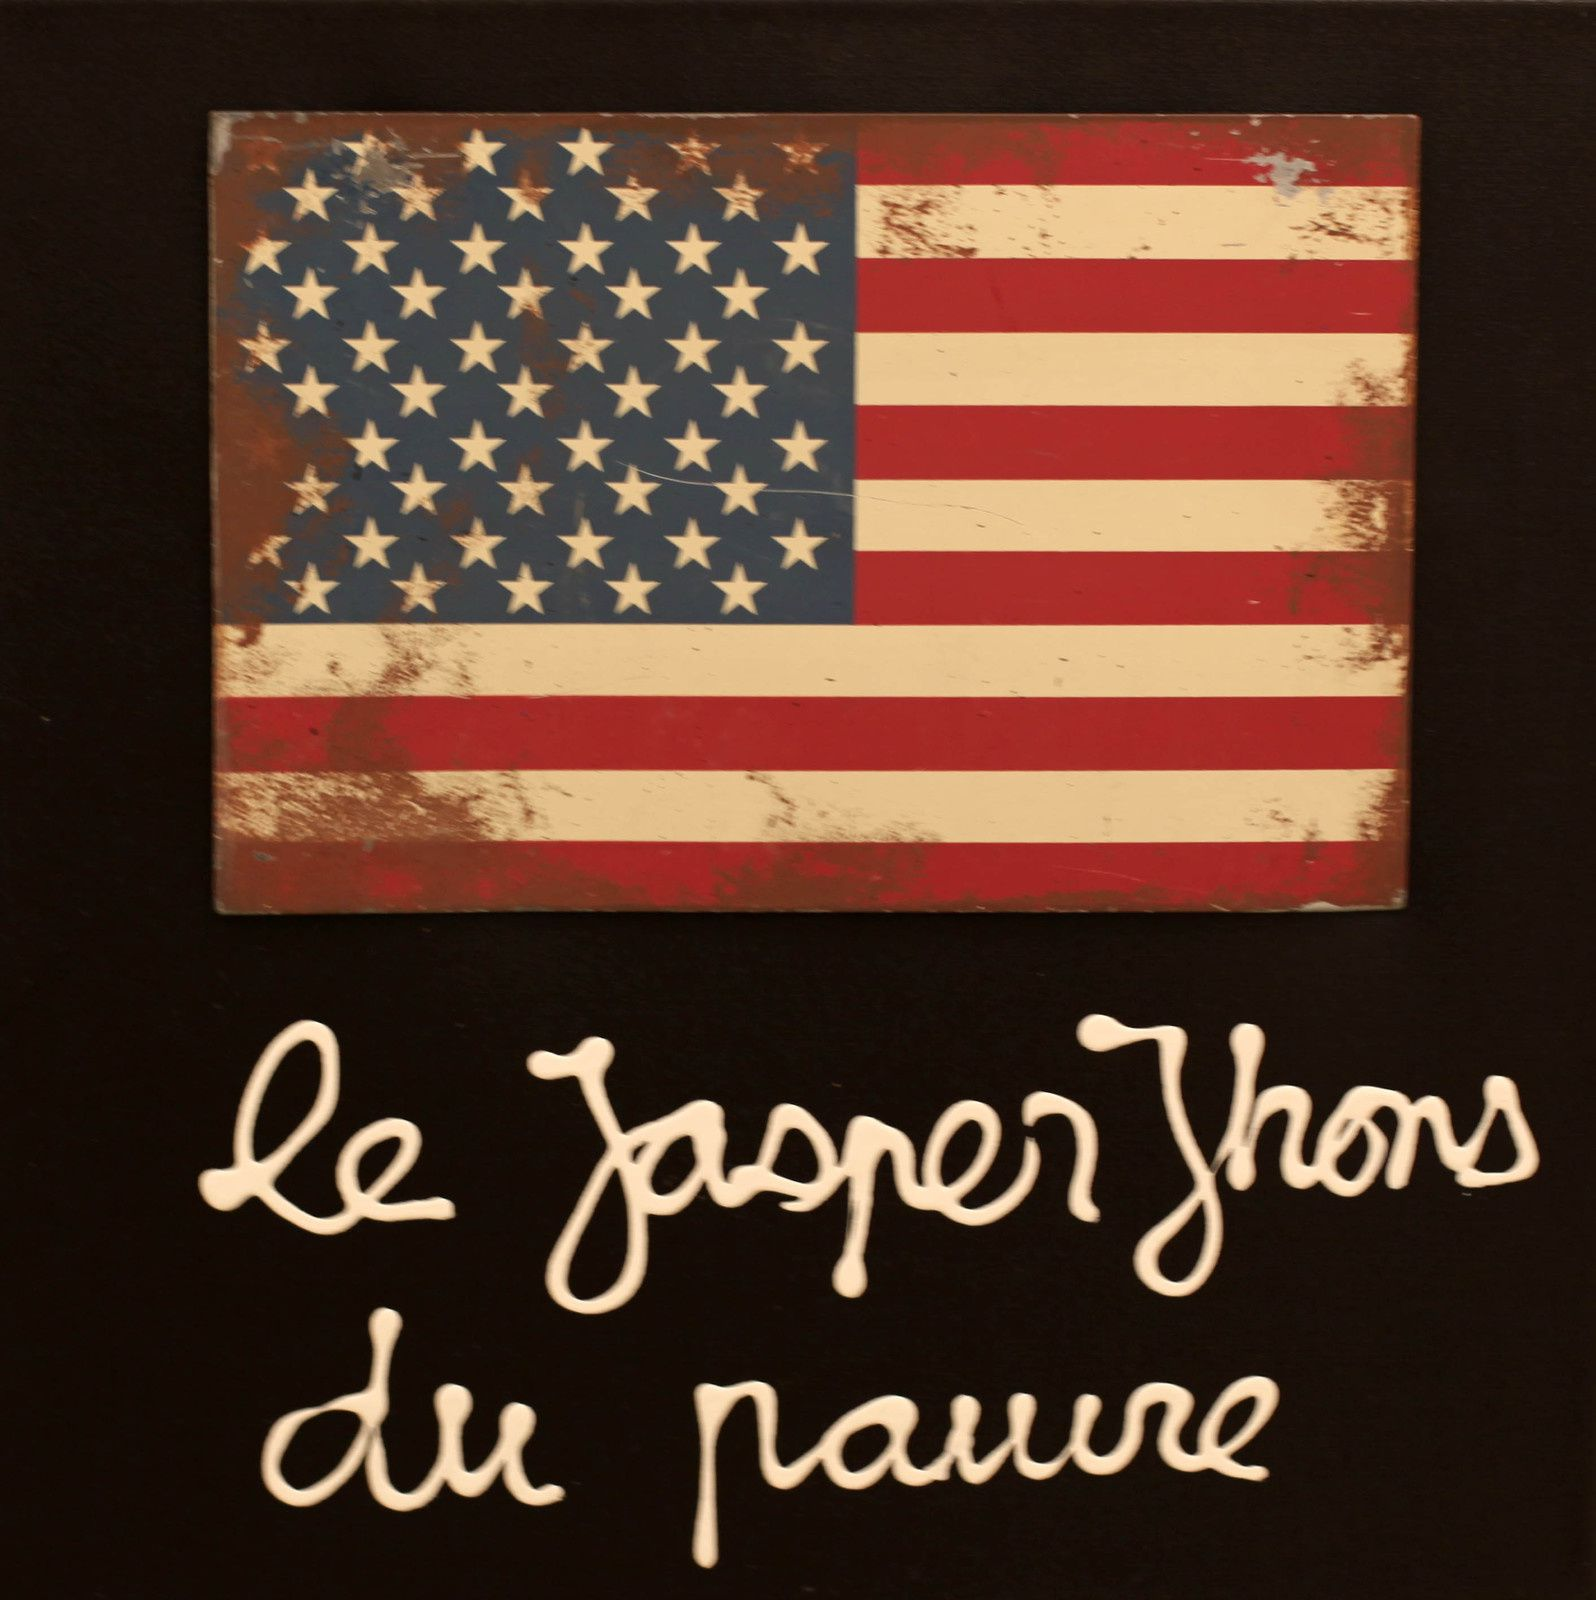 """Le Jasper Johns du pauvre"" de BEN - Courtesy Galerie Lara Vincy © Photo Éric Simon"